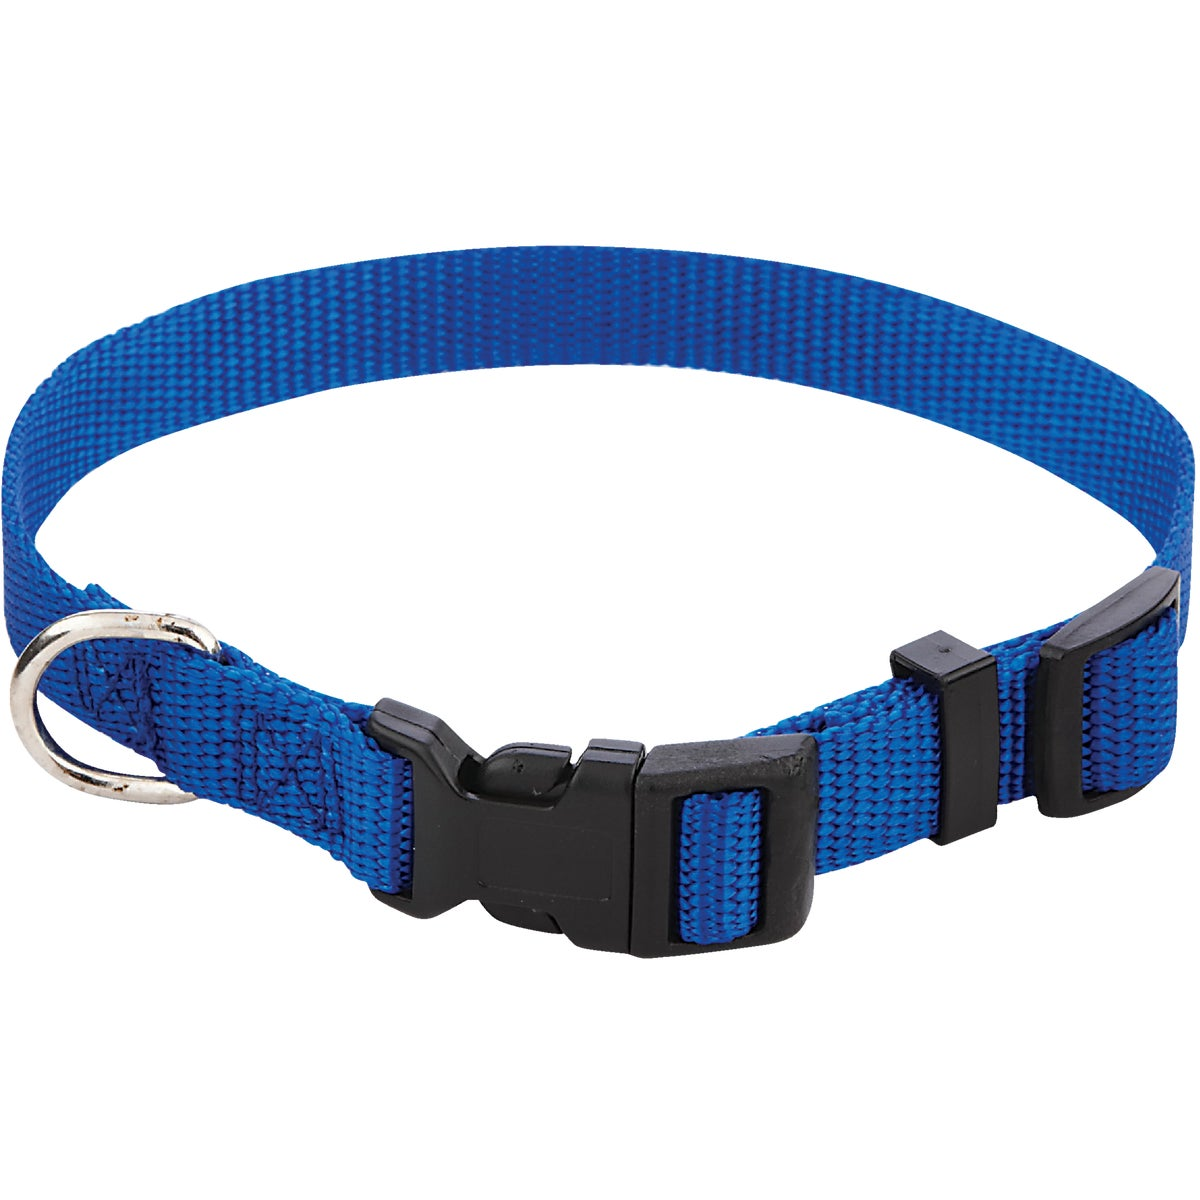 5/8X10-16 NYL ADJ COLLAR - 31441 by Westminster Pet